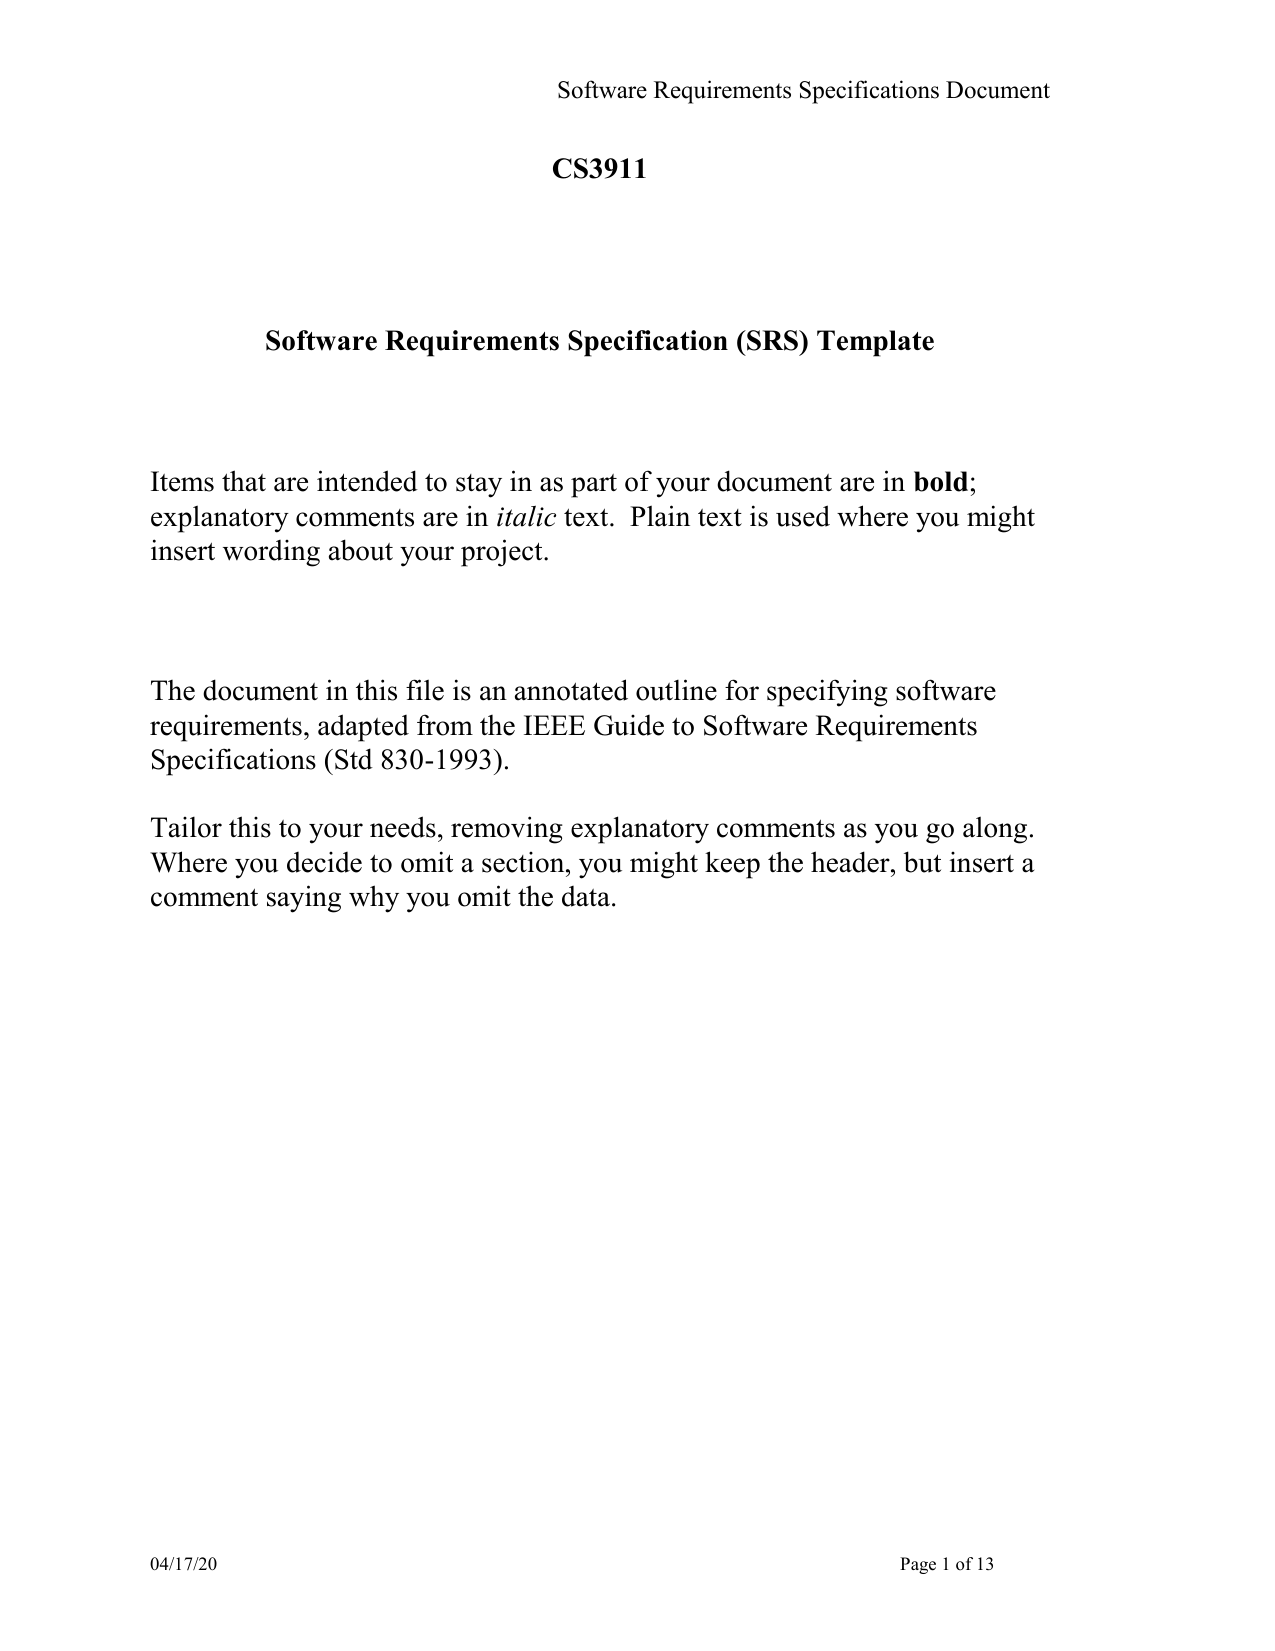 Software Requirements Specification Srs Template